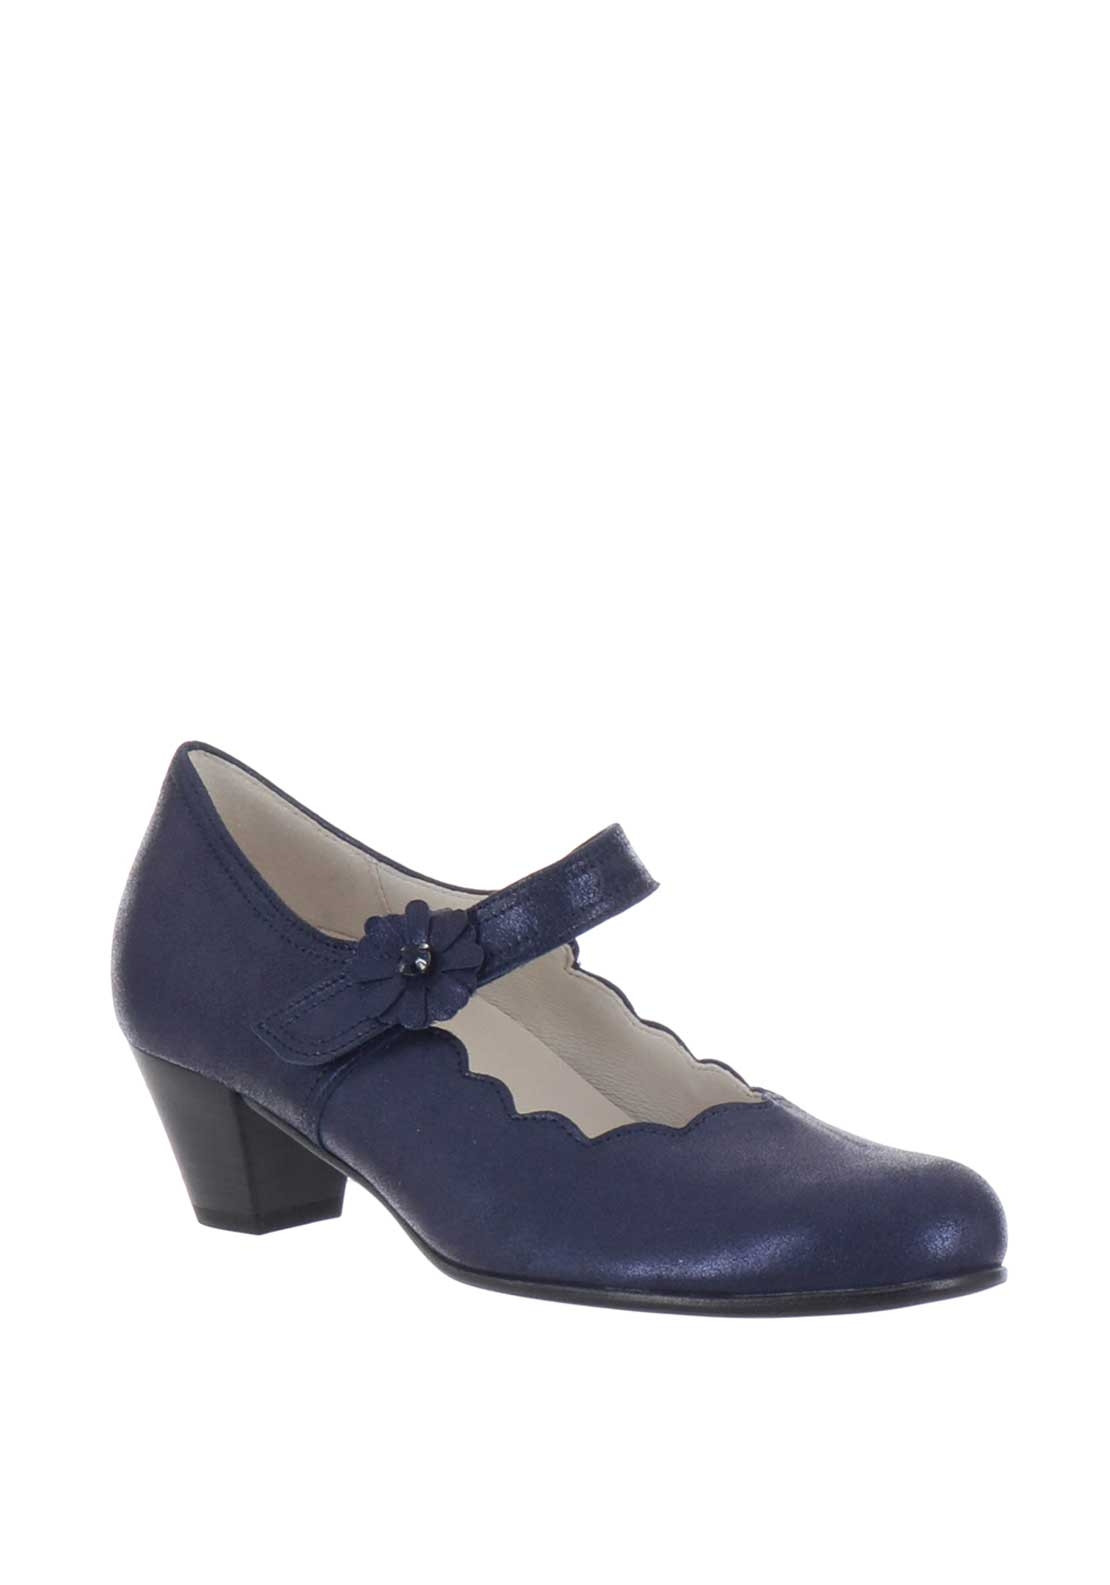 Gabor Leather Scalloped Velcro Heeled Comfort Shoes, Navy